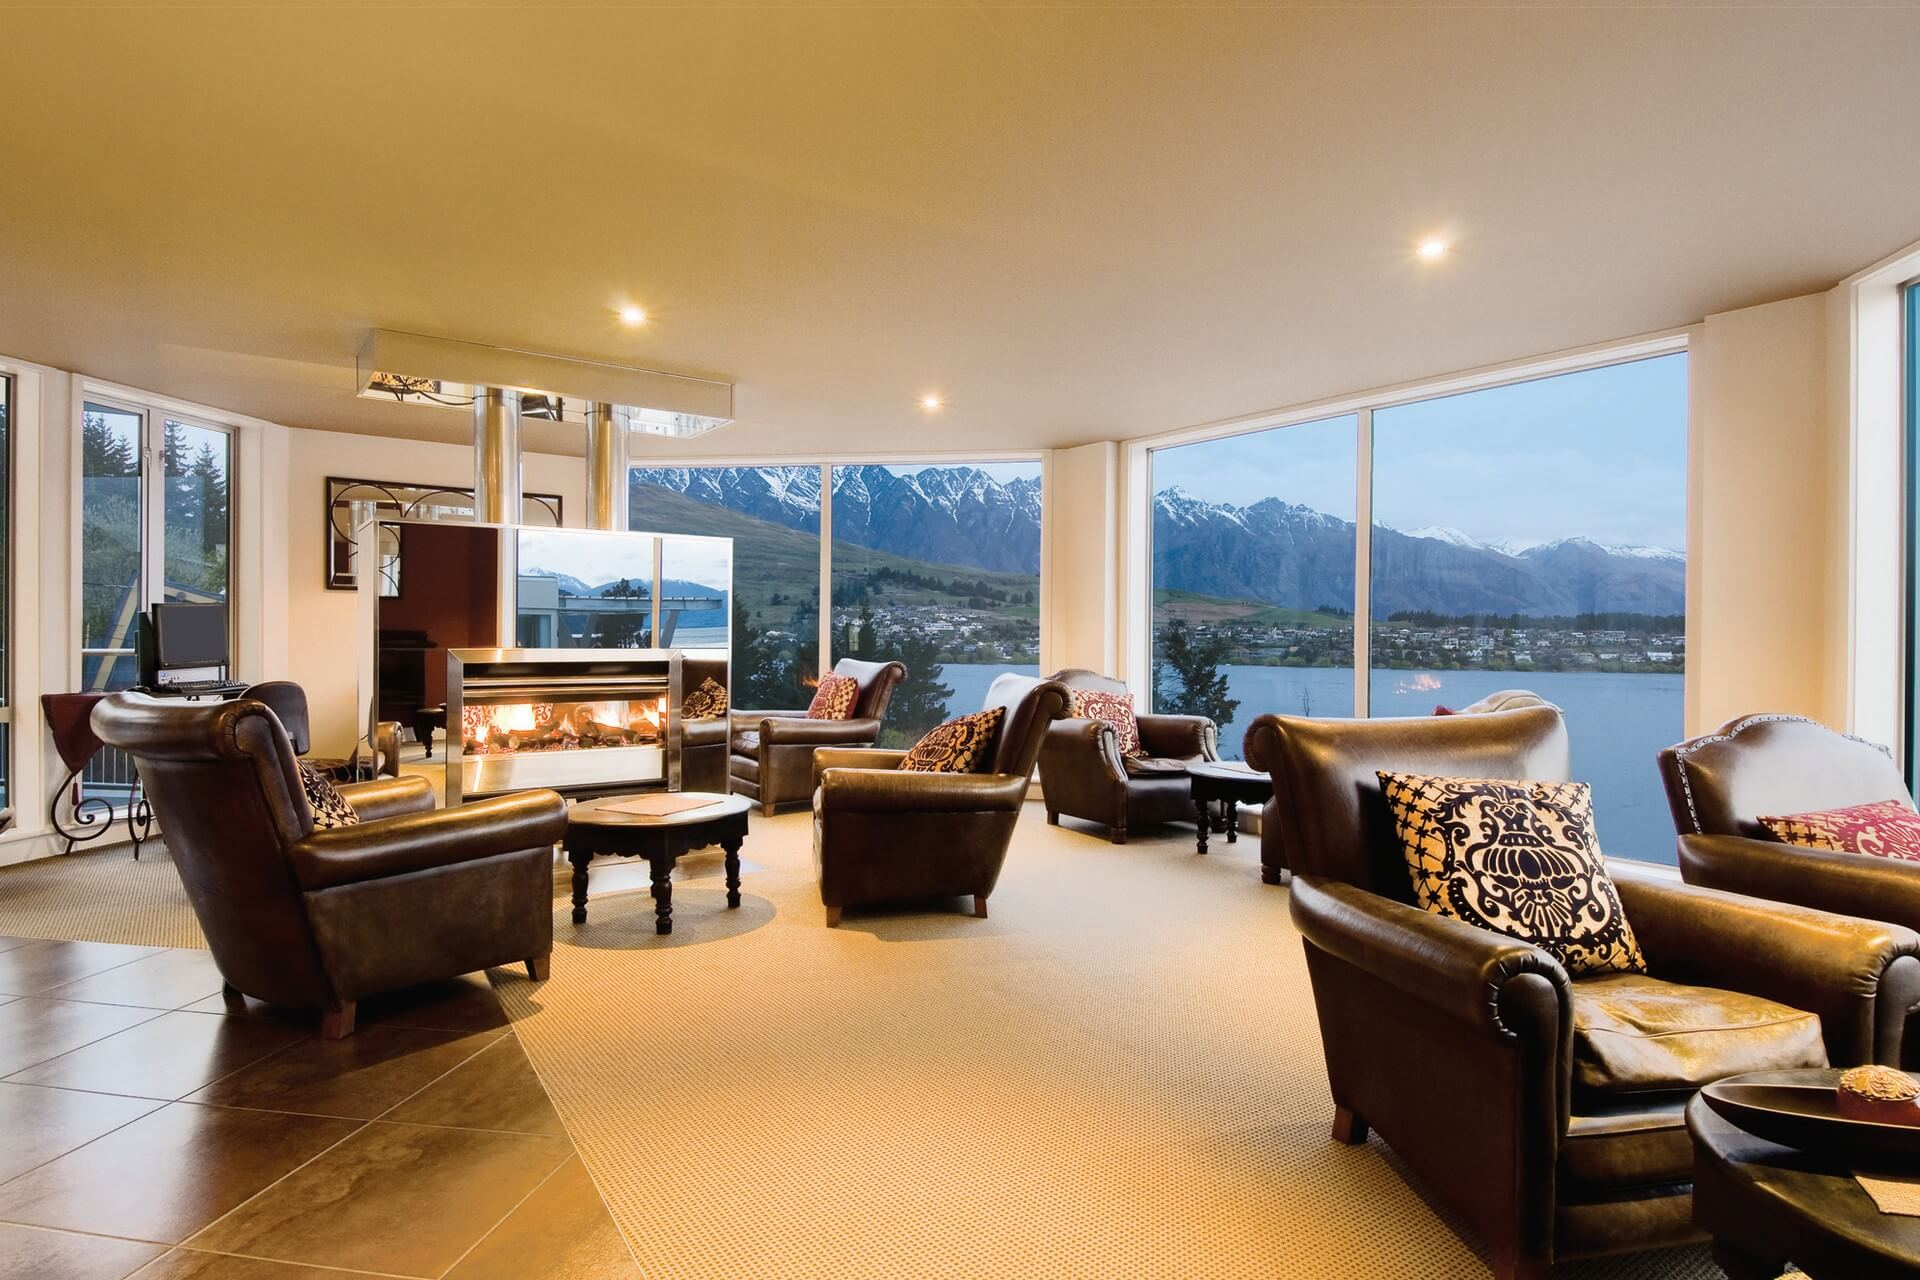 Queenstown_Oaks Club - Common Lounge & View(1920x1280)